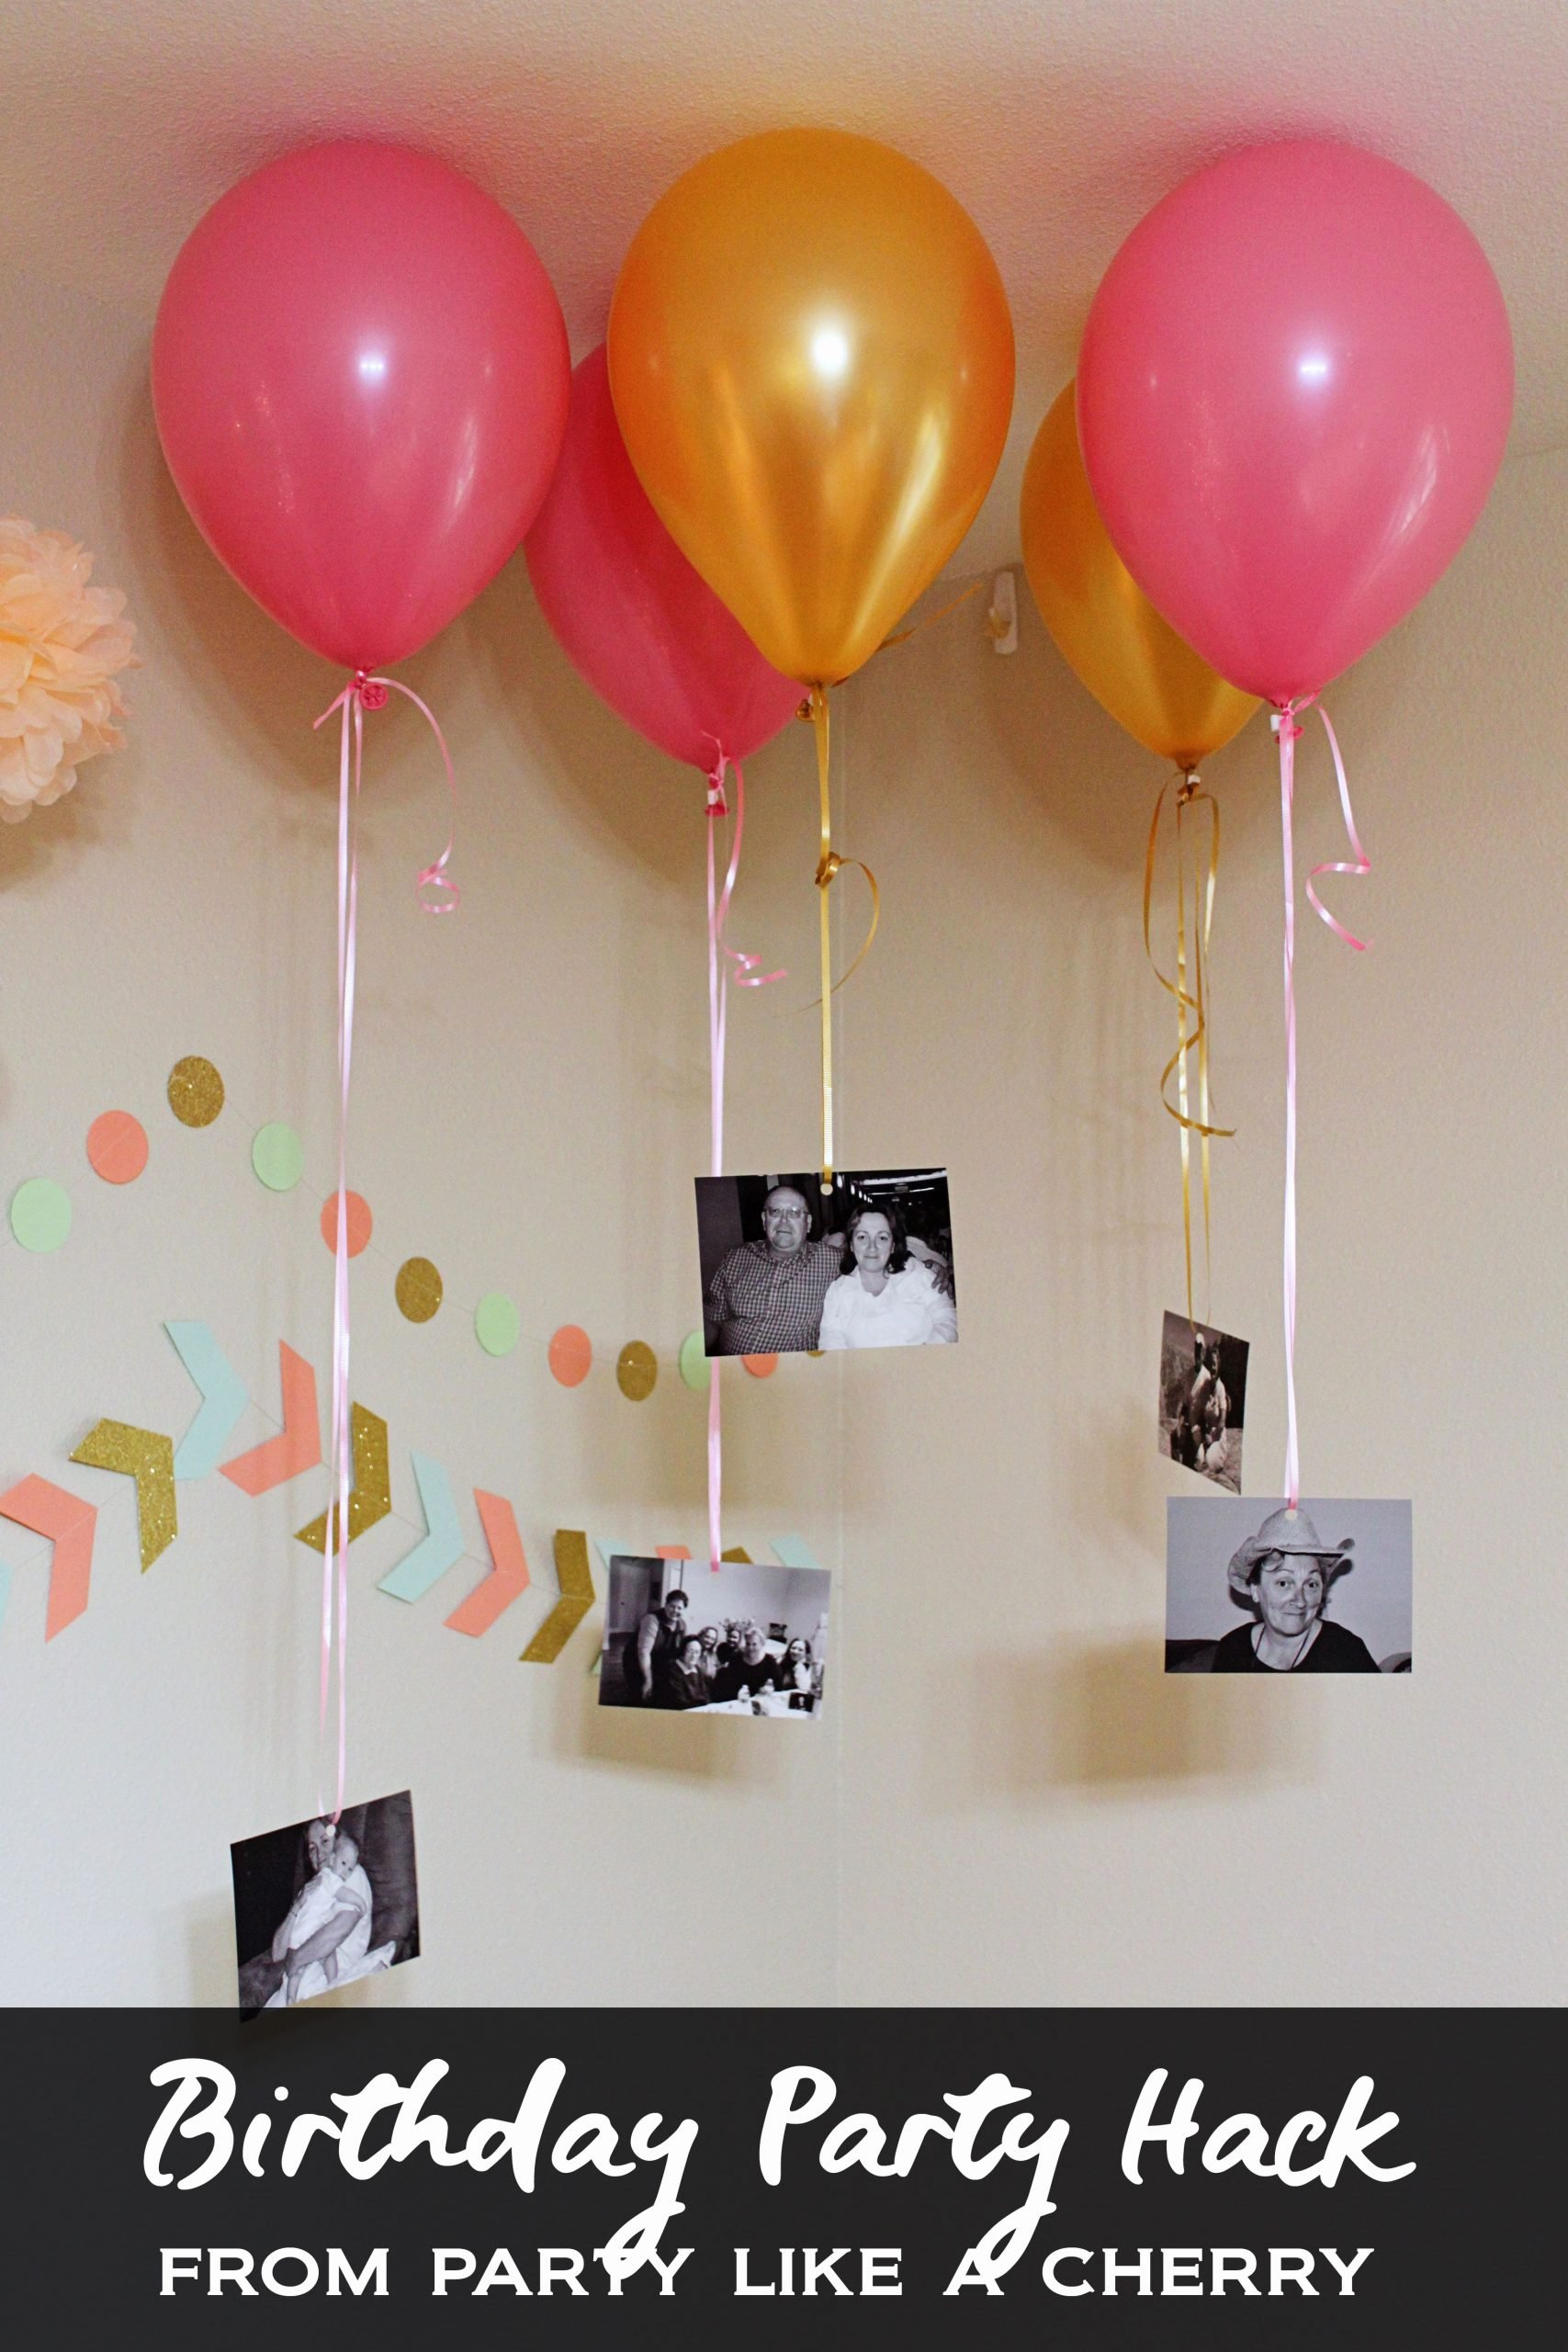 60 Year Old Birthday Decoration Ideas Awesome 60th Birthday Party Ideas Party Like A Cherry